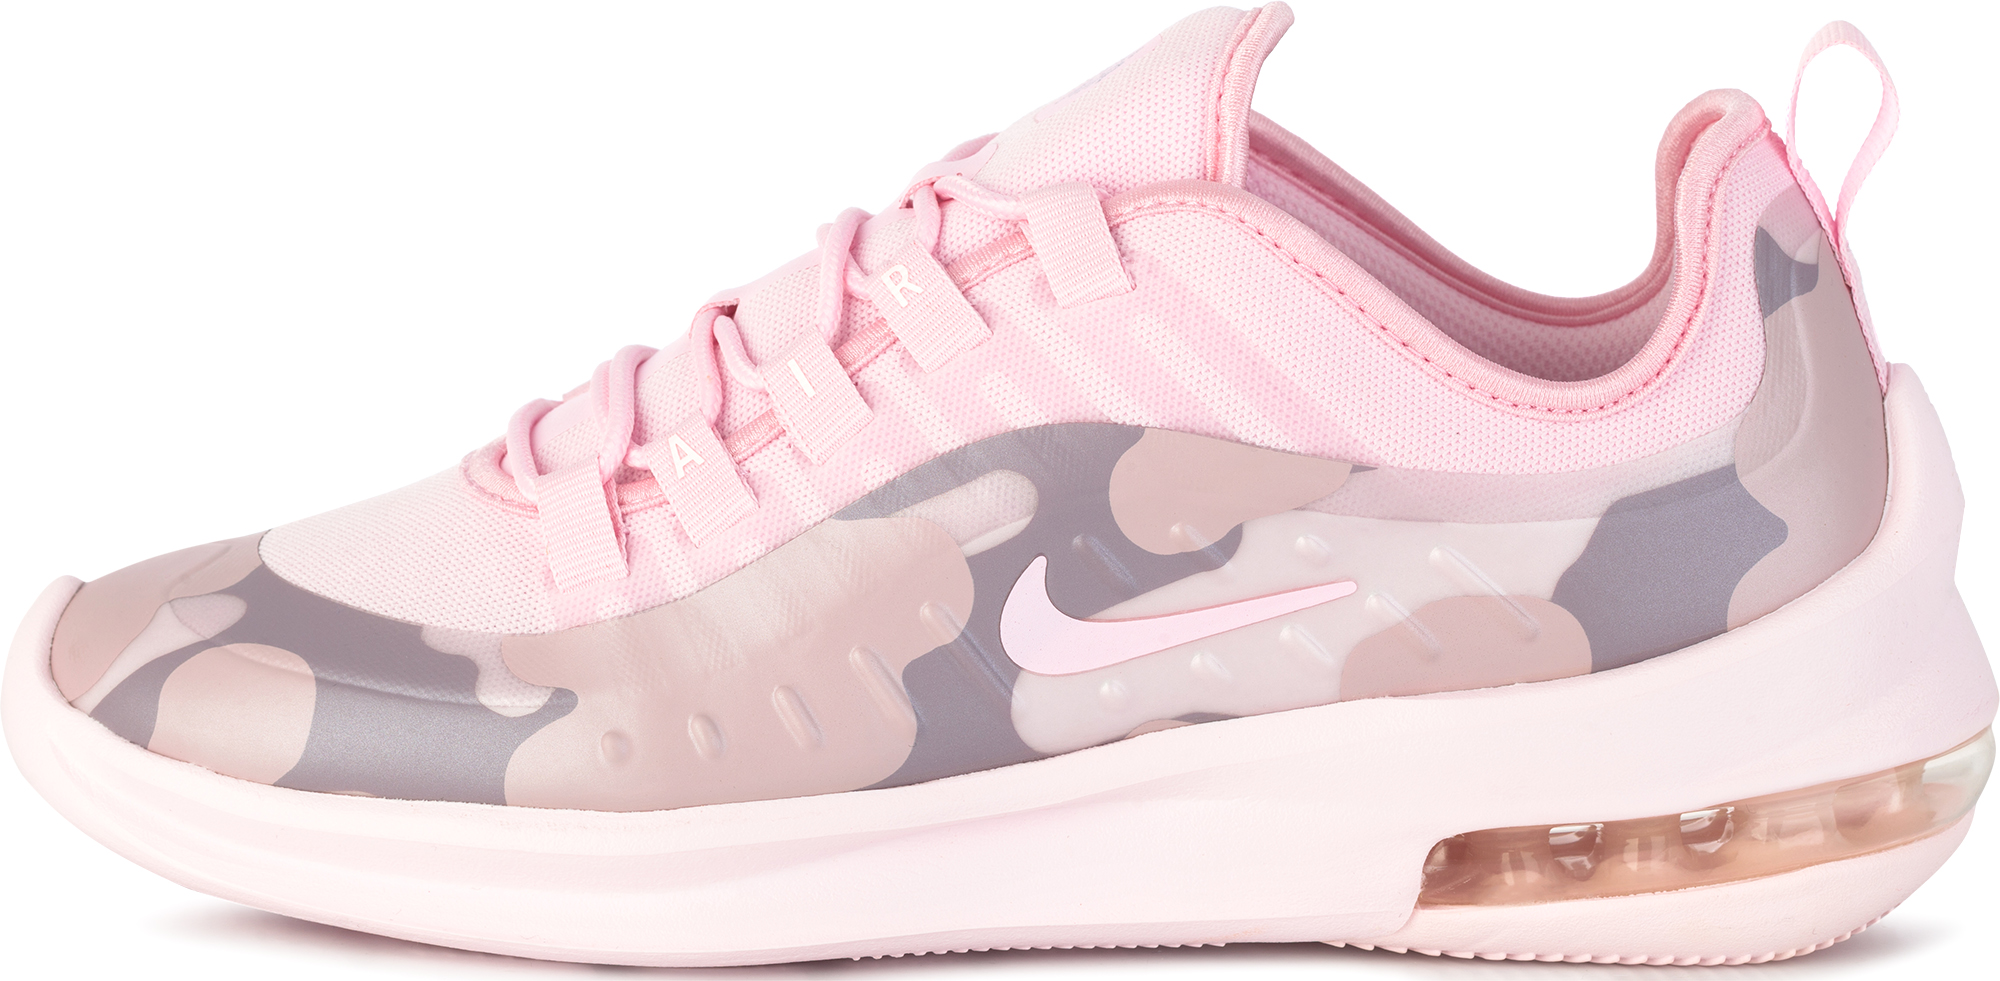 Nike Кроссовки женские Nike Air Max Axis Premium, размер 38